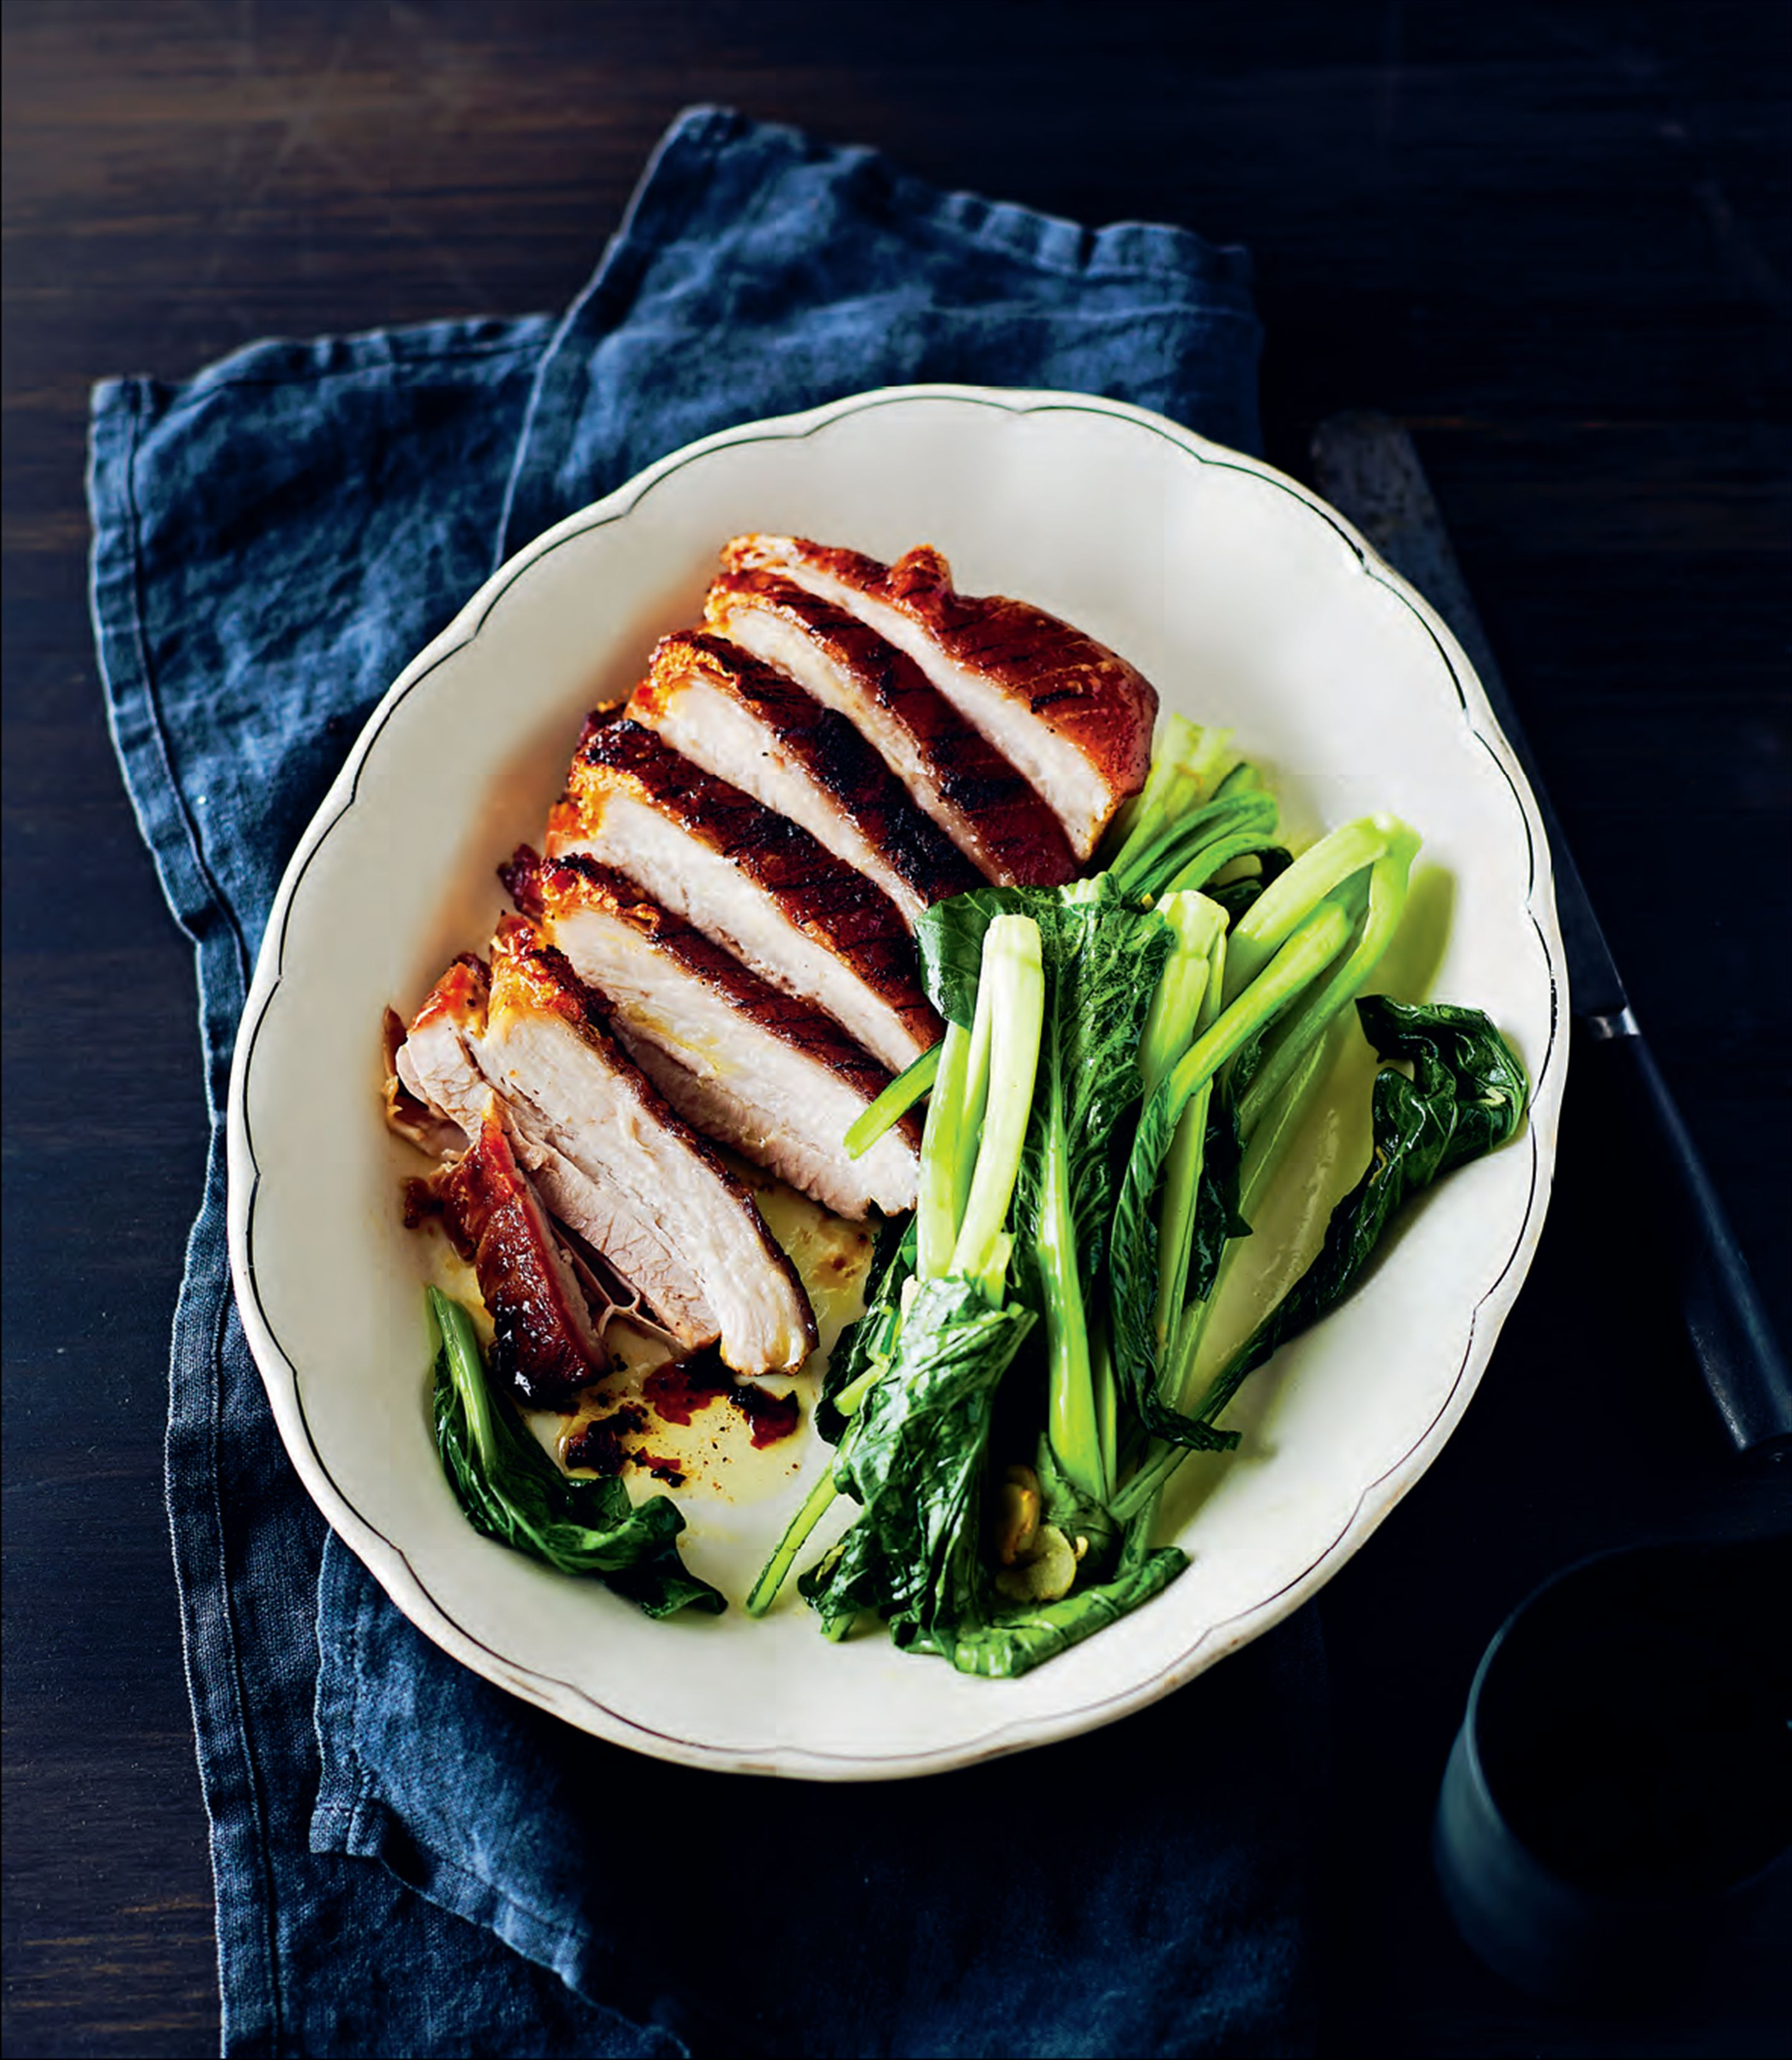 Slow-cooked five-spice pork belly with chinese broccoli